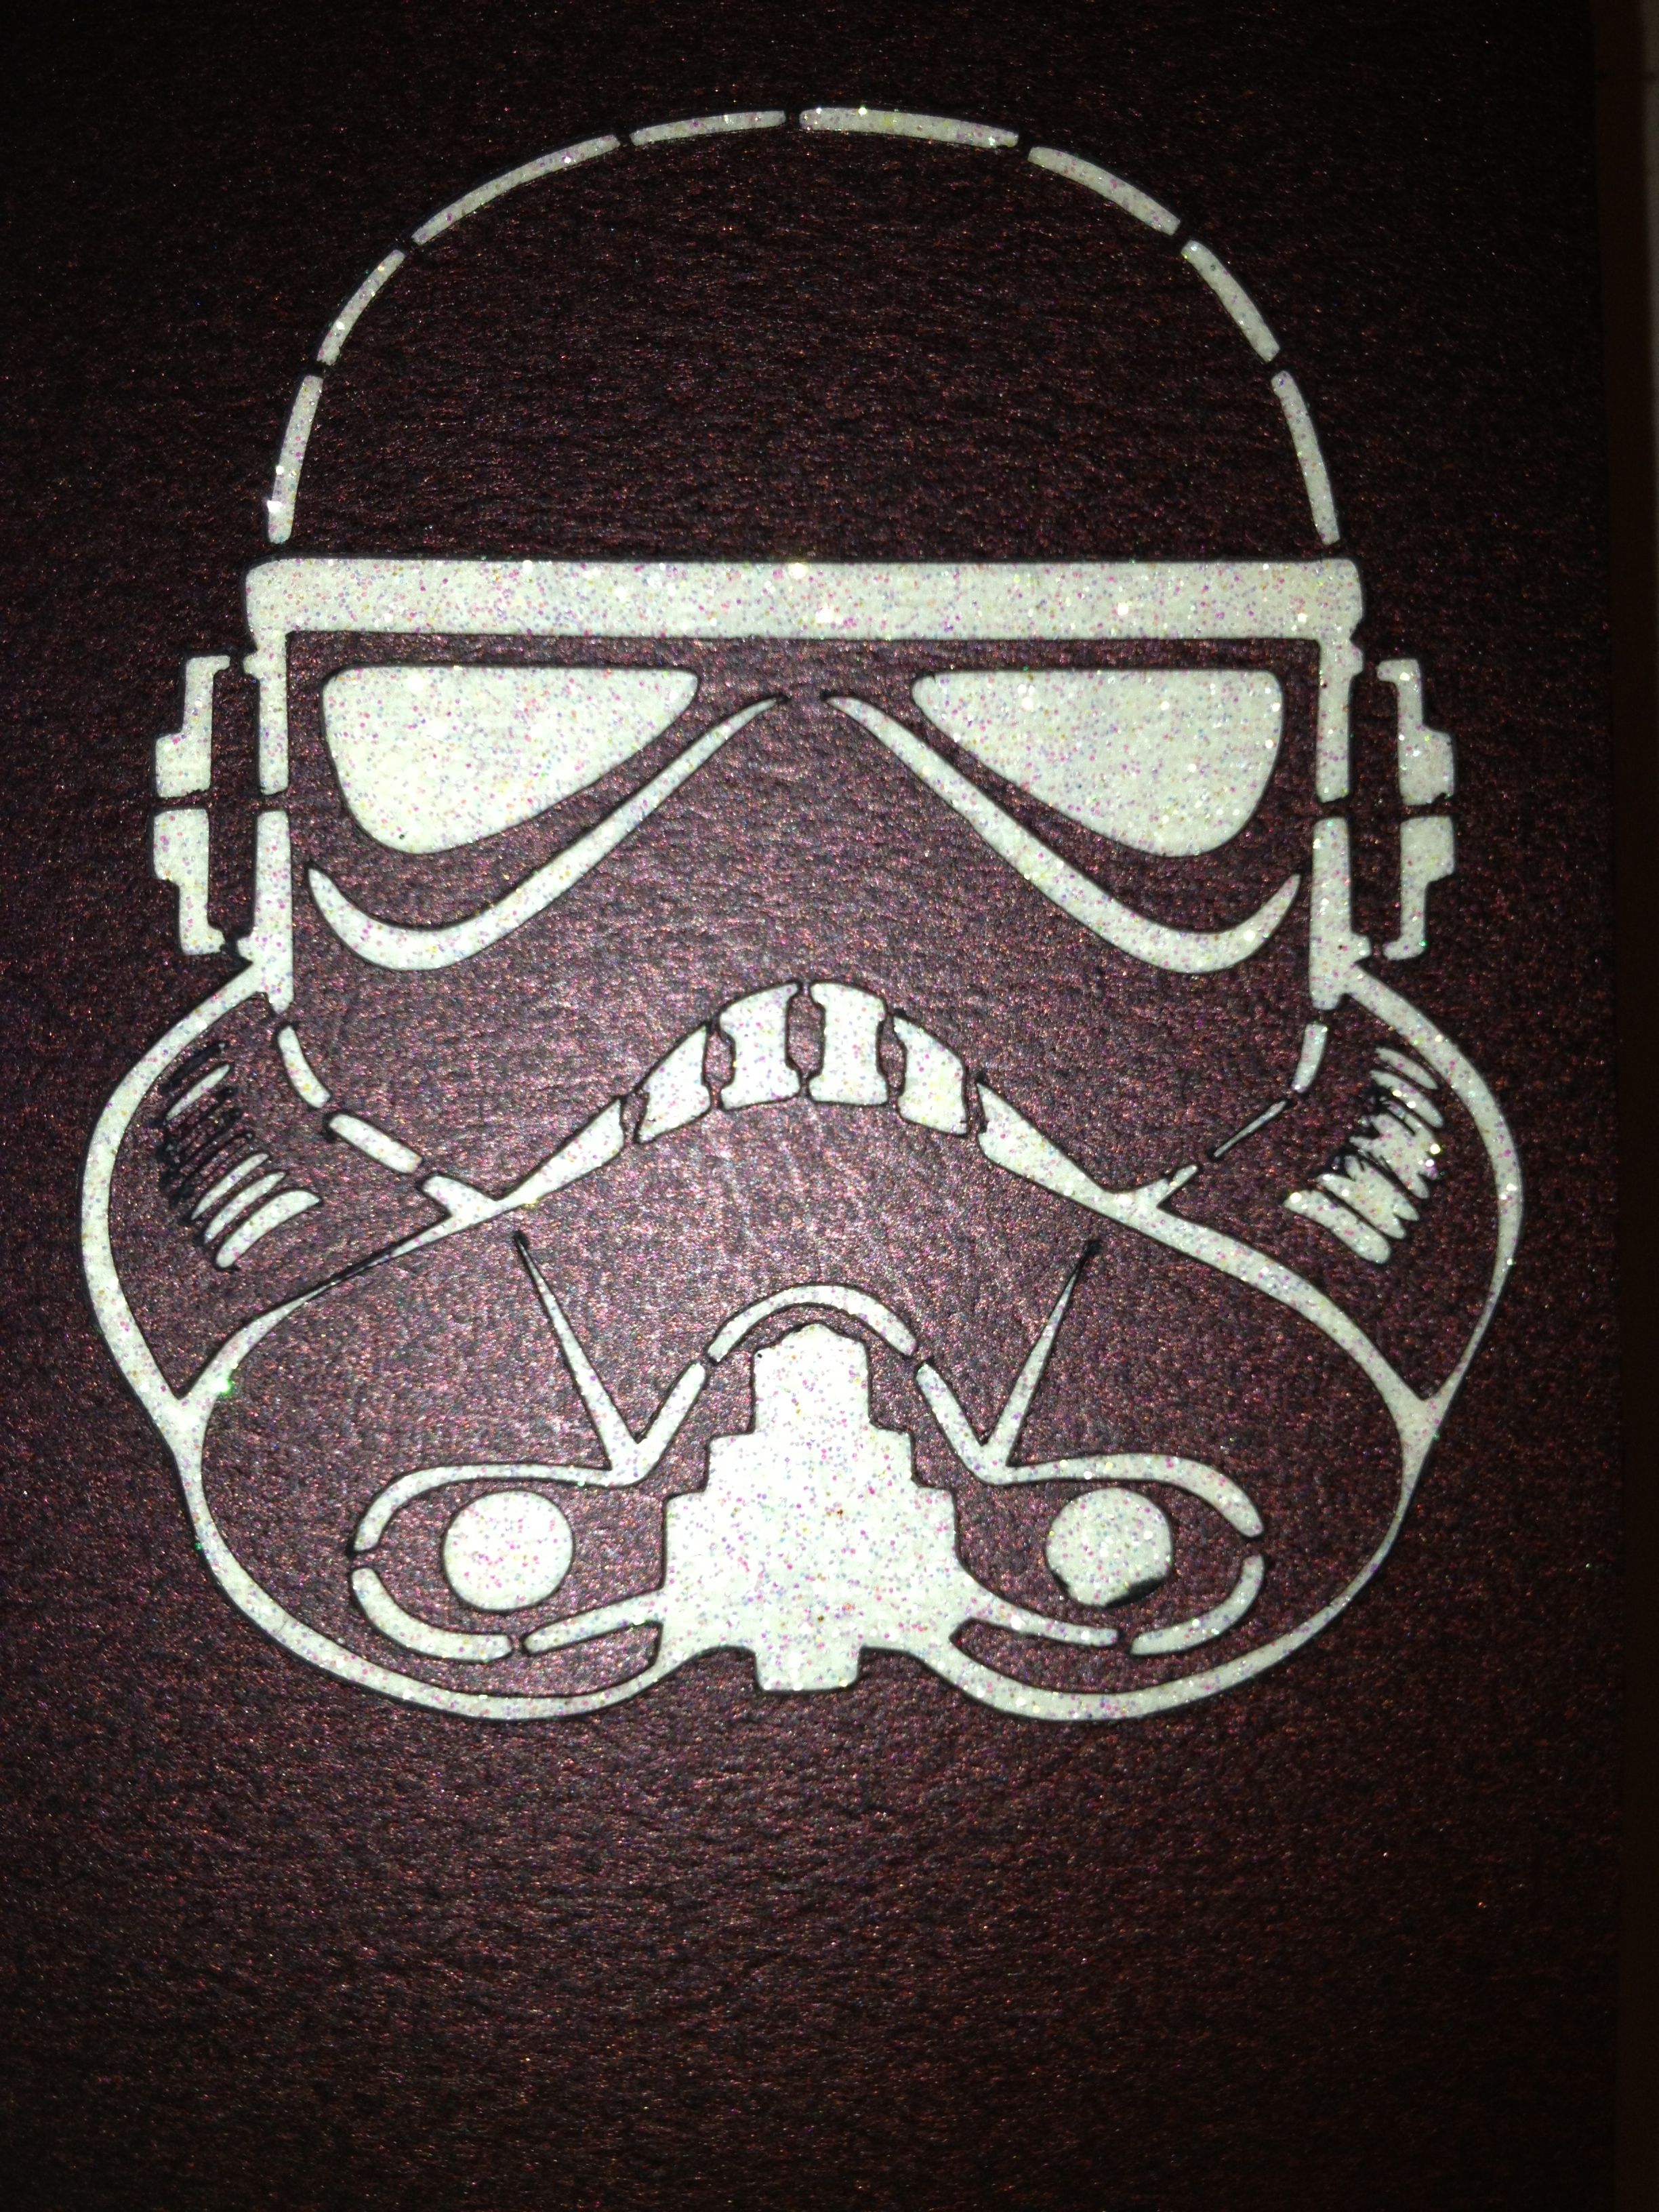 Star wars stormtrooper cut out birthday card made using silhouette star wars stormtrooper cut out birthday card made using silhouette portrait machine bookmarktalkfo Images